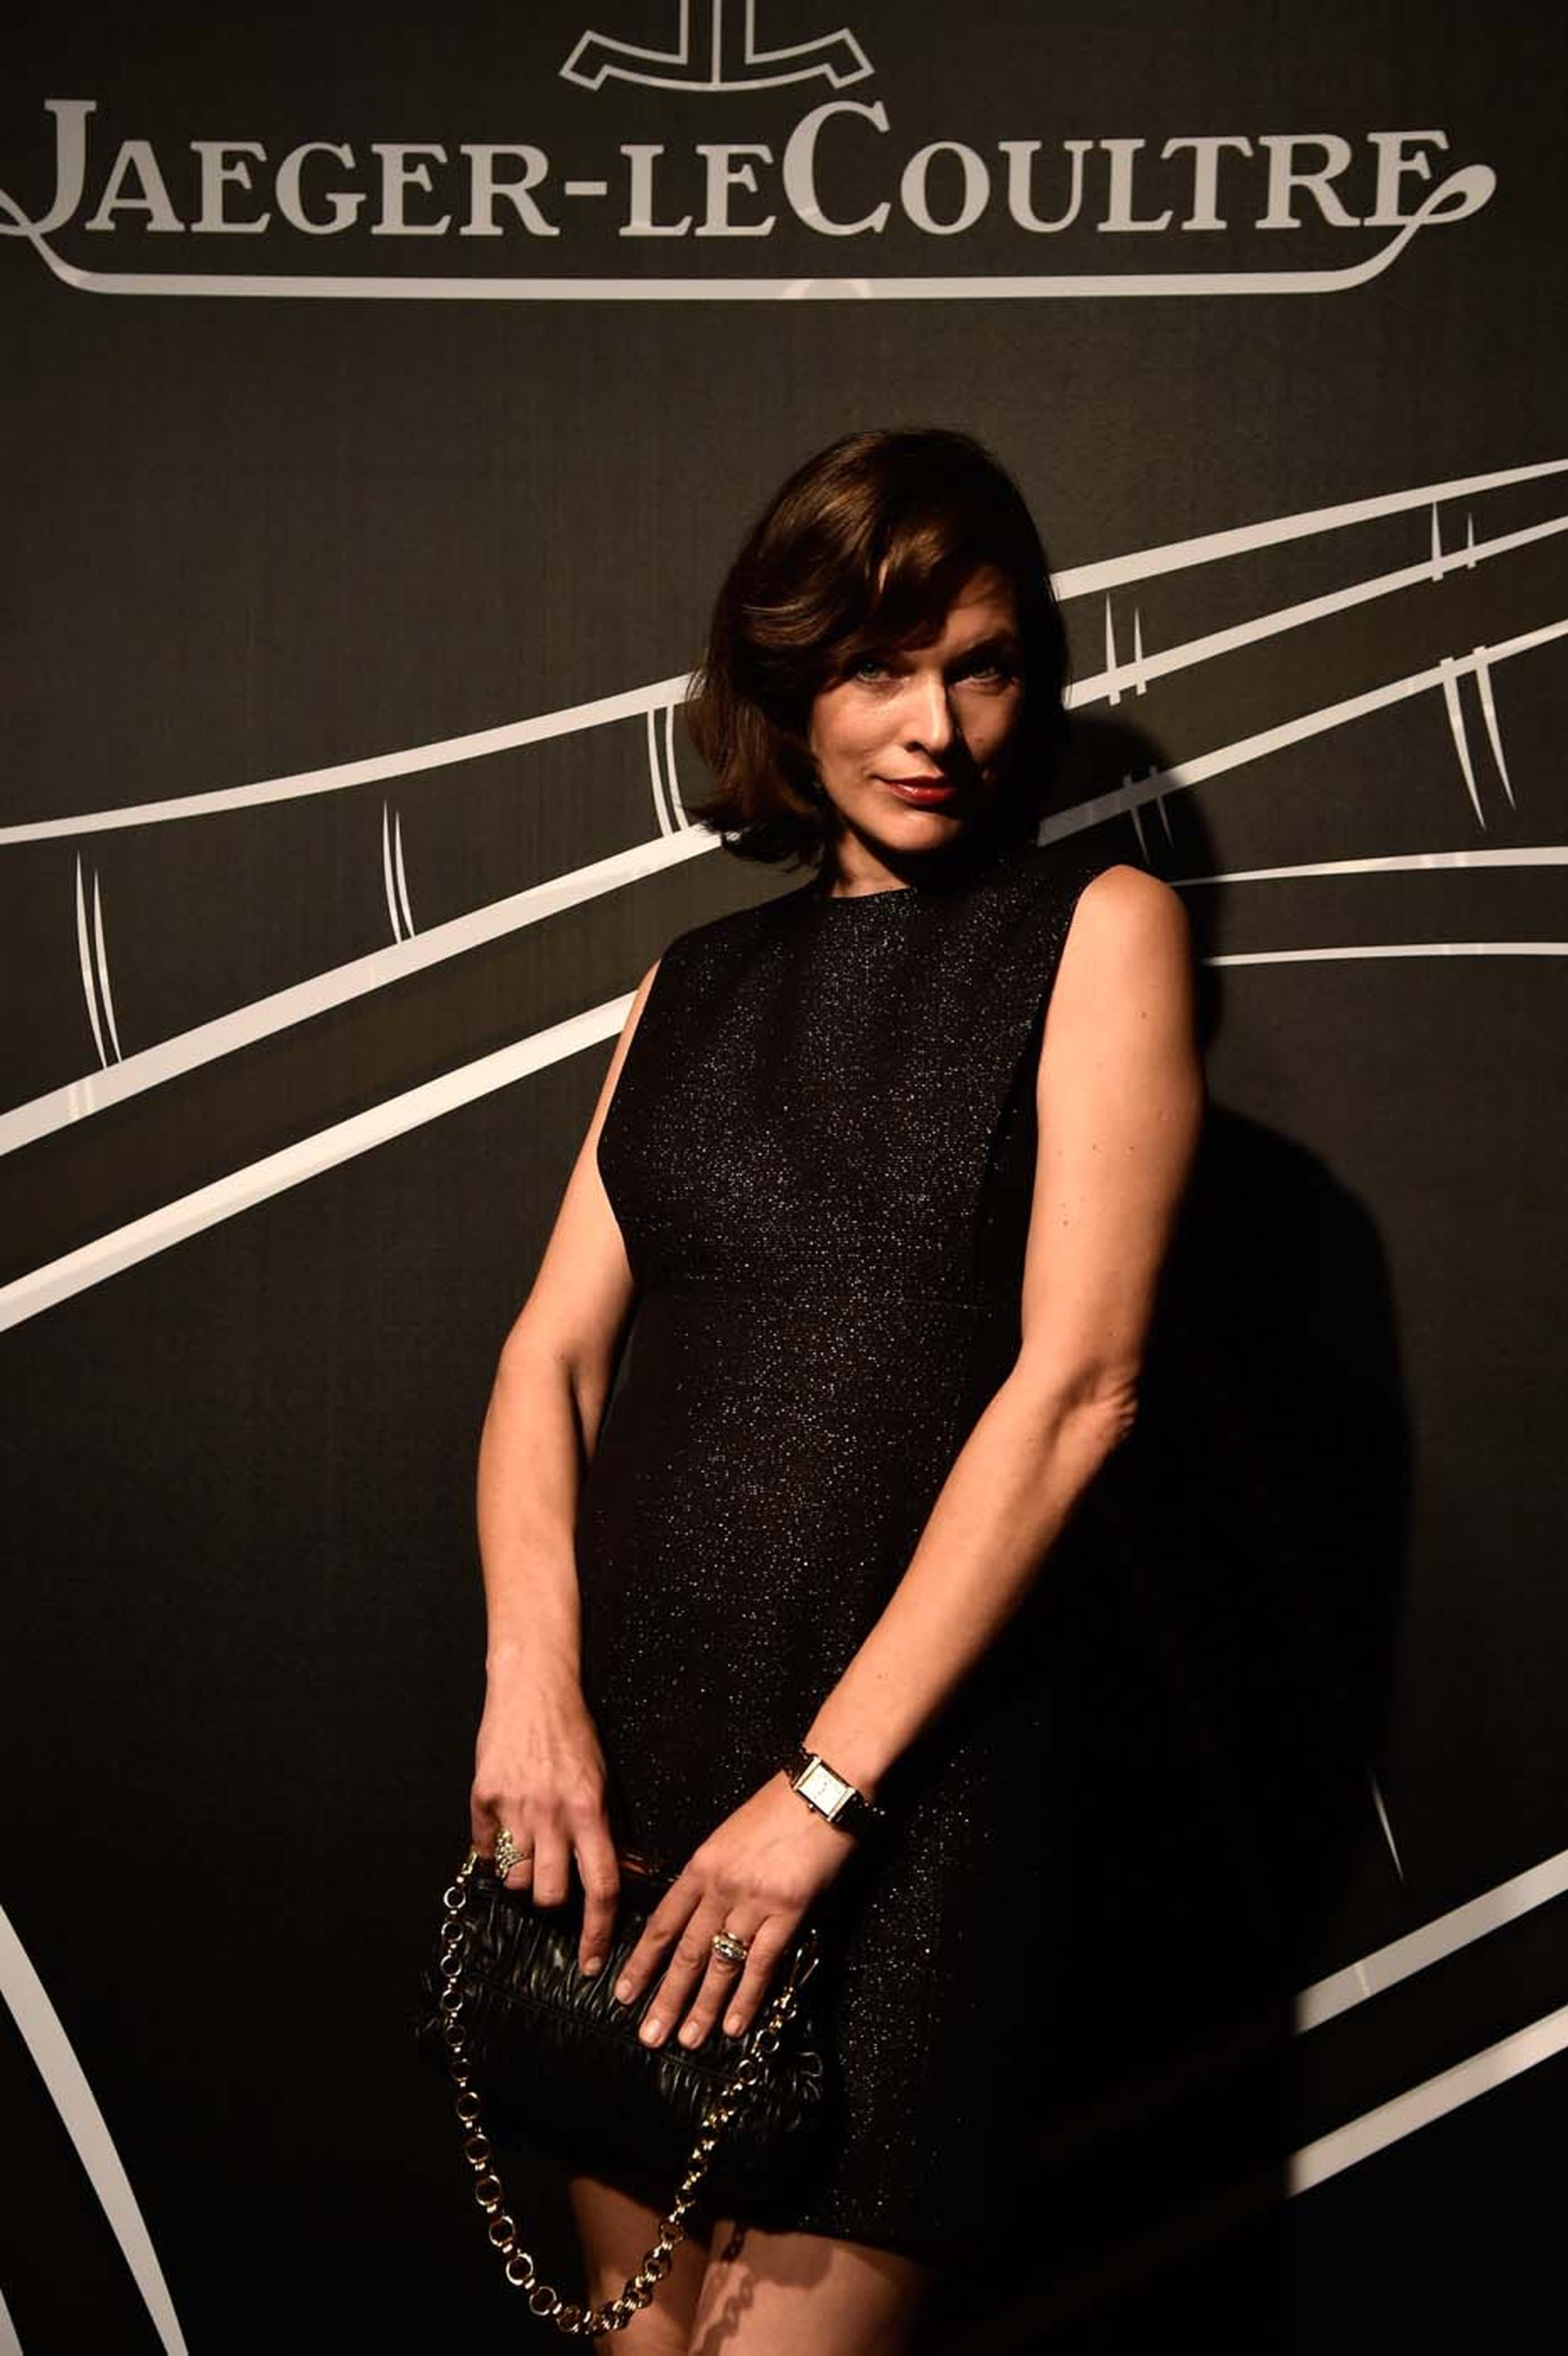 Milla Jovovich strikes a pose wearing a Jaeger-LeCoultre watch during the 2014 Venice Film Festival's Gala Dinner.